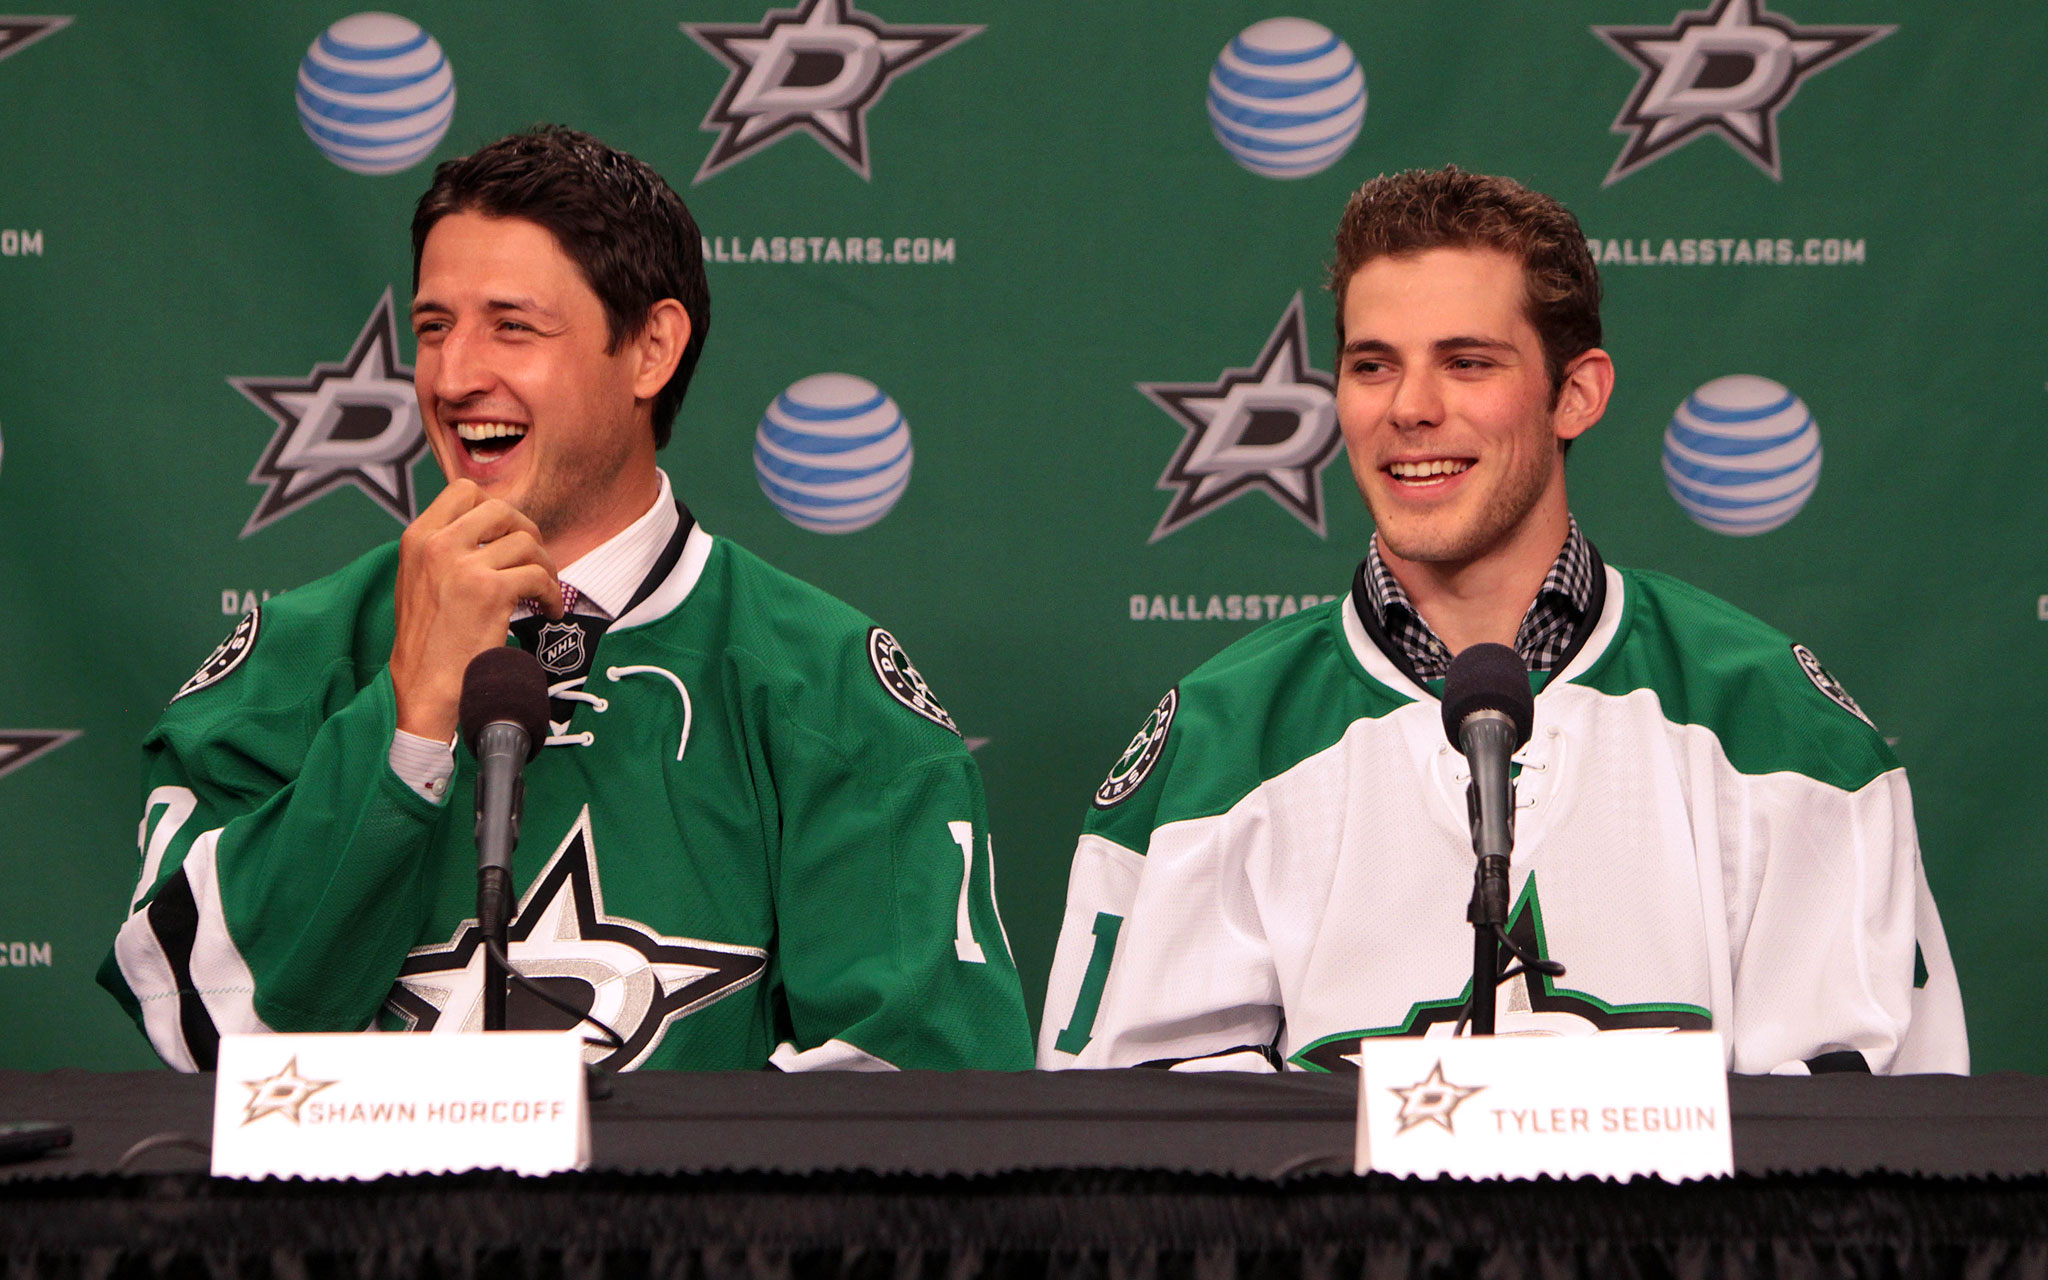 Shawn Horcoff and Tyler Seguin in Dallas